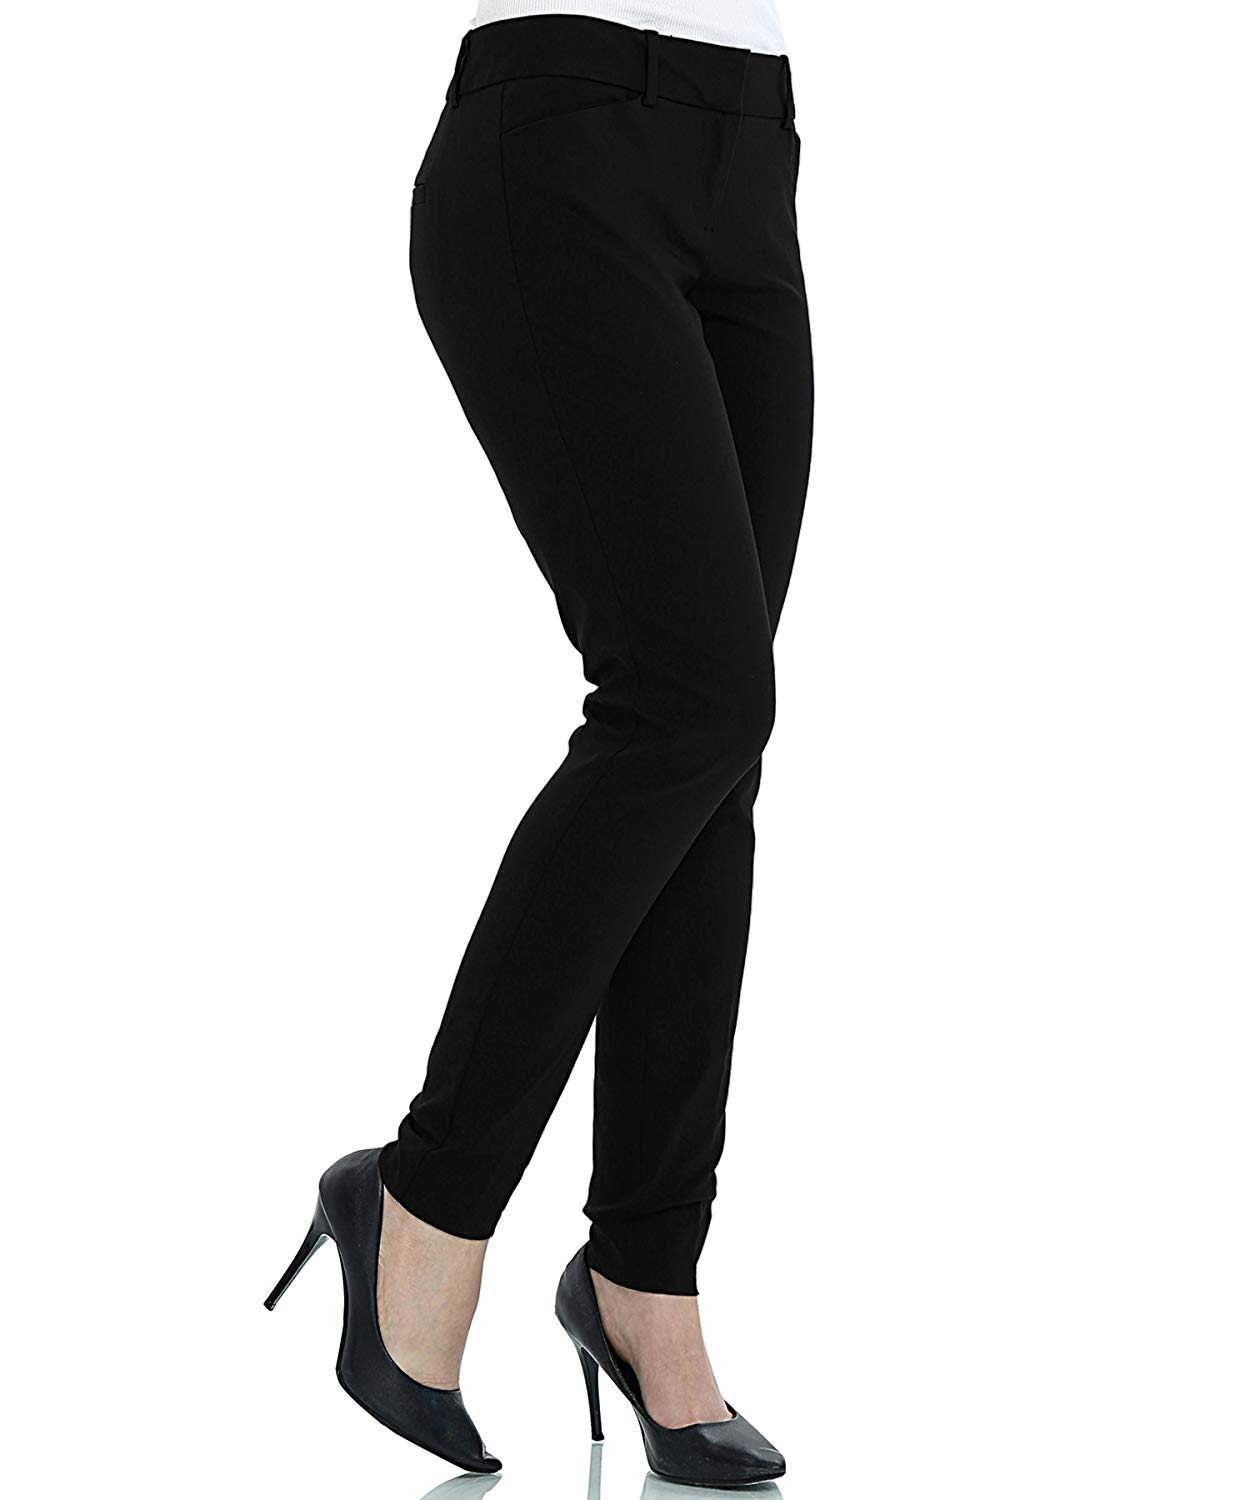 65f419f6e9a73 Get Quotations · ZEFER Women s Straight Fit Trouser Pants for All Occasions Bootcut  Dress Pants for Women -Work